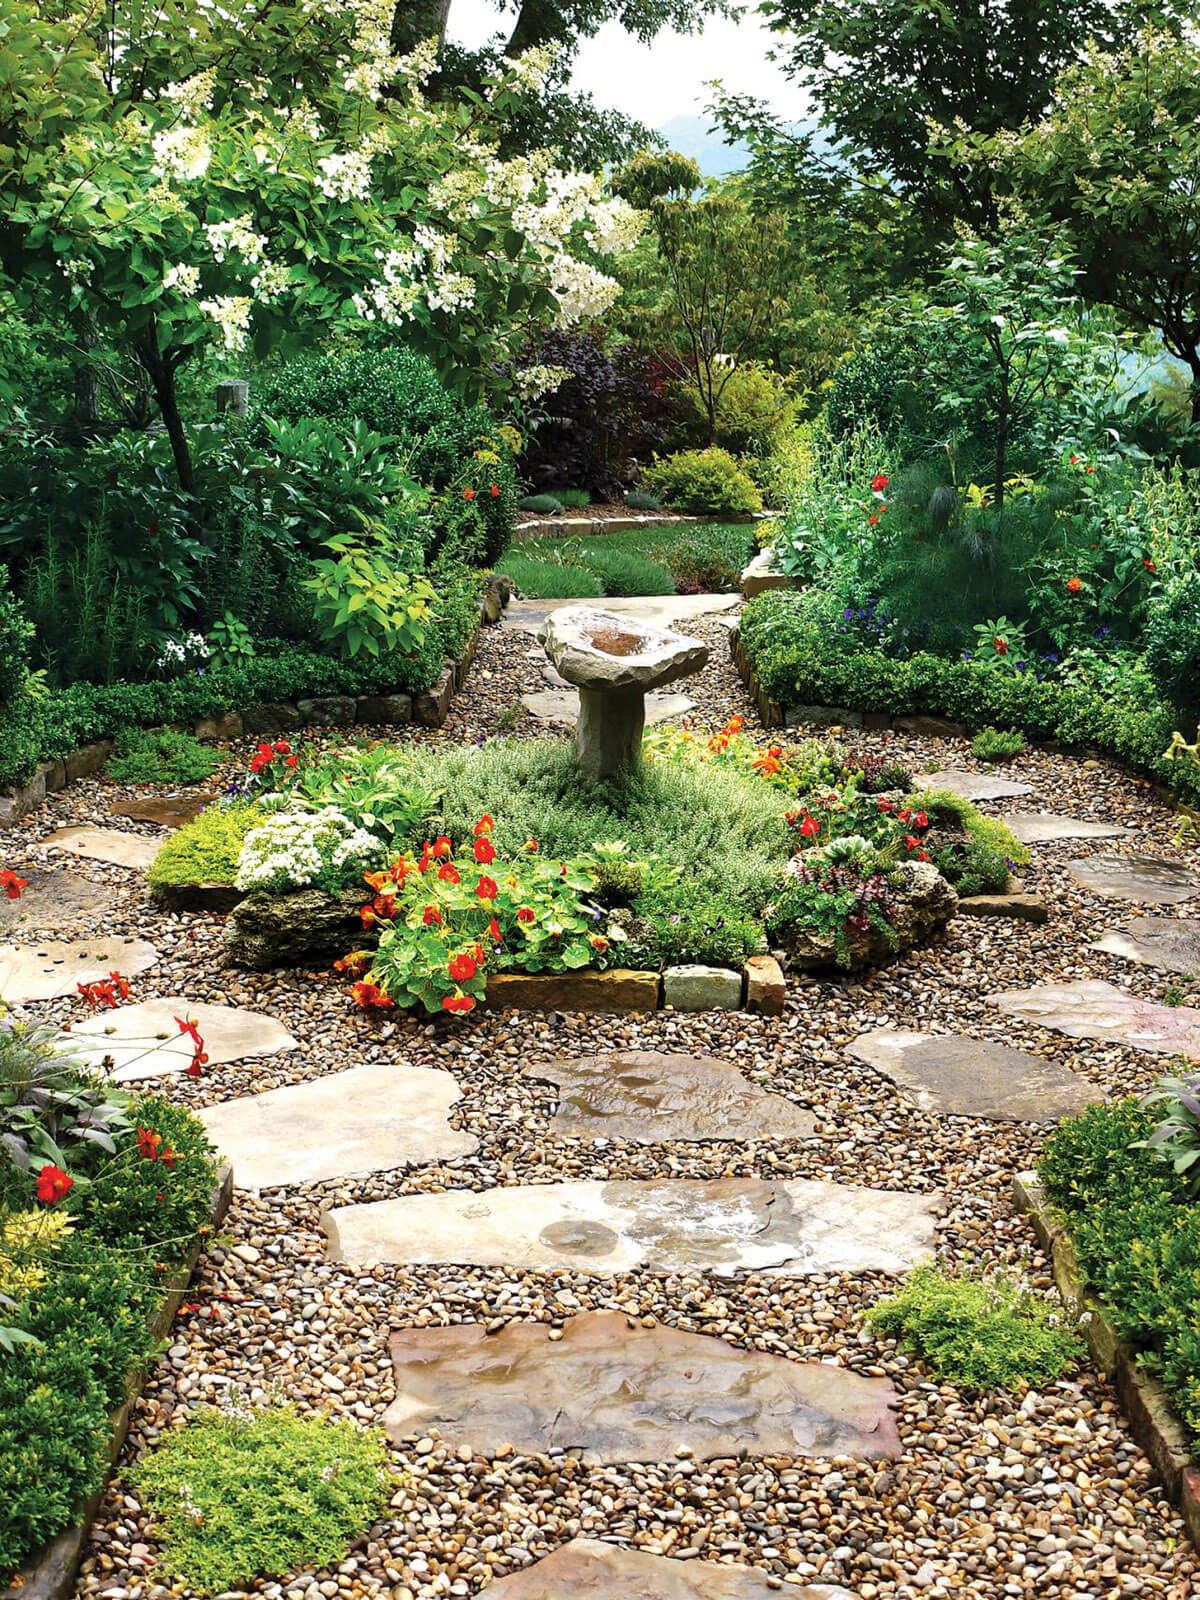 16 Design Ideas for Beautiful Garden Paths - Style Motivation